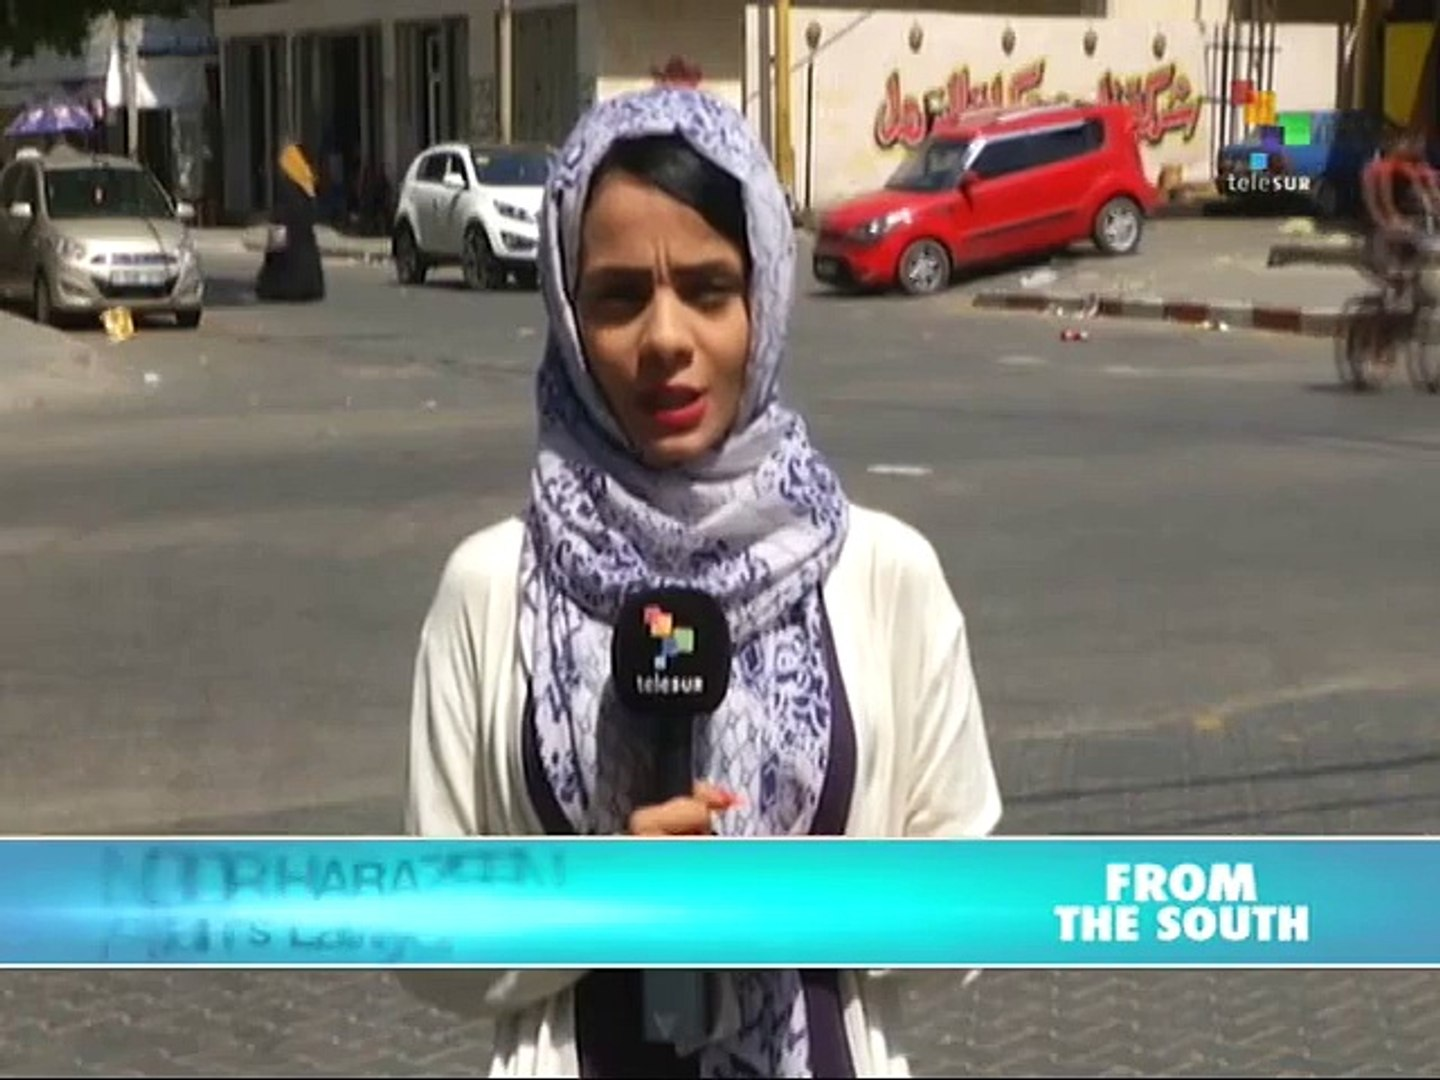 Palestine: Egypt to Open Rafah Border Crossing for 4 Days